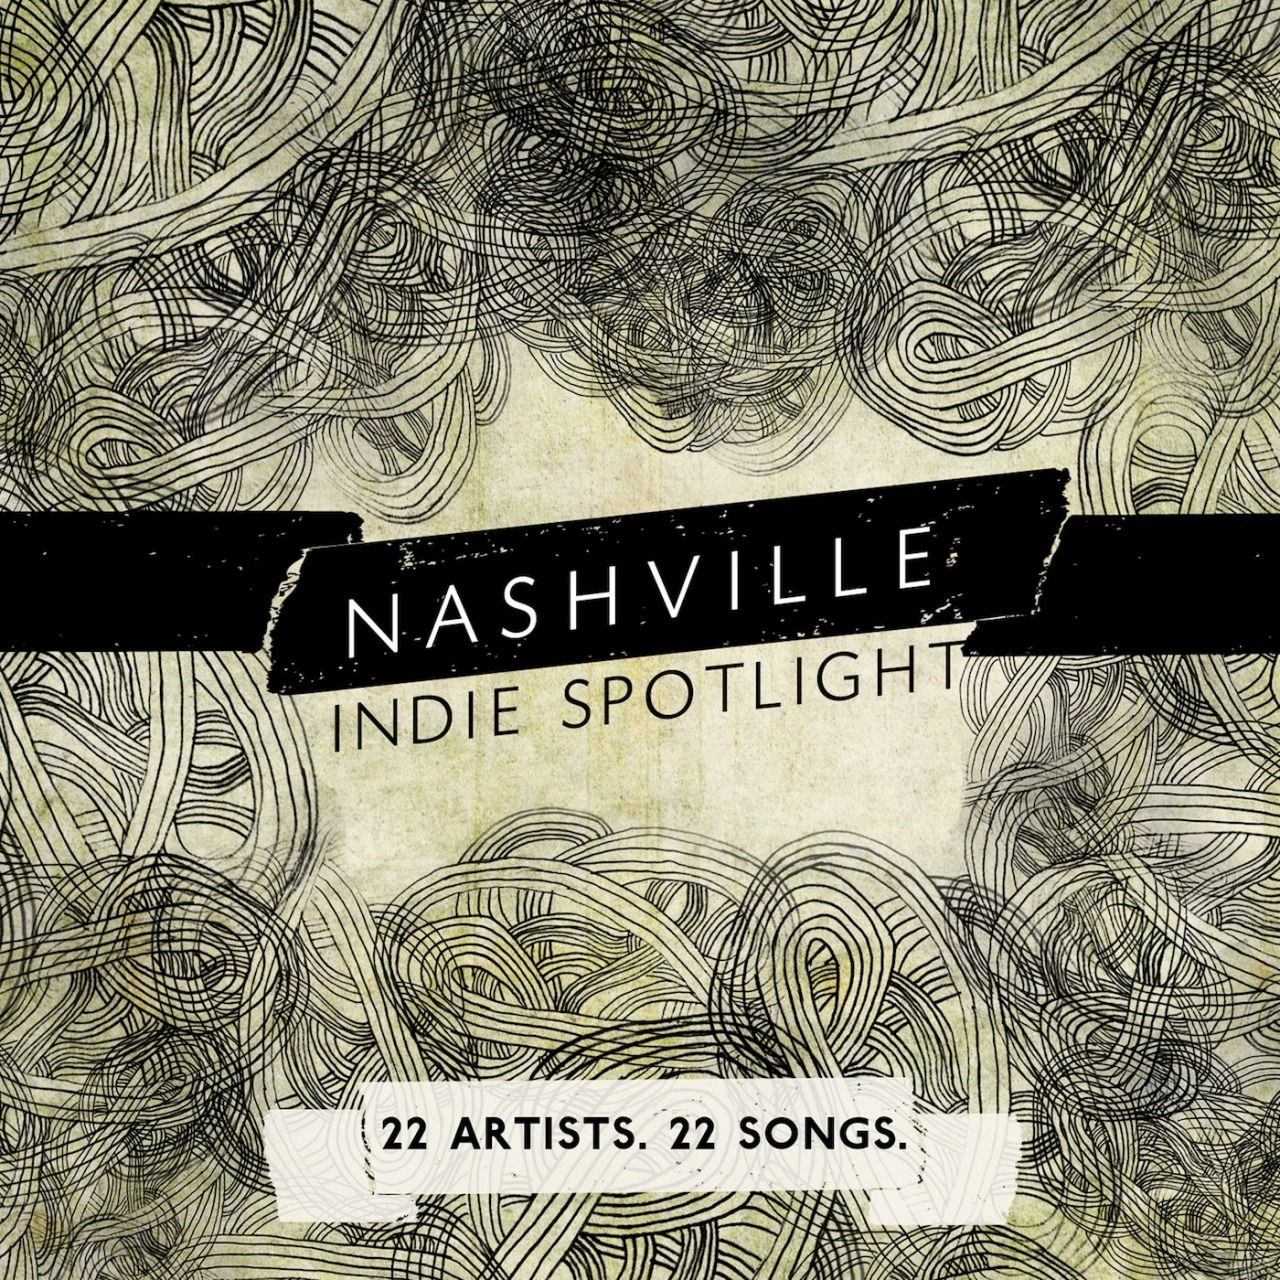 My new track 'Mountain Song' is available on the Nashville Indie Spotlight album on iTunes. Proud to be in such great company.